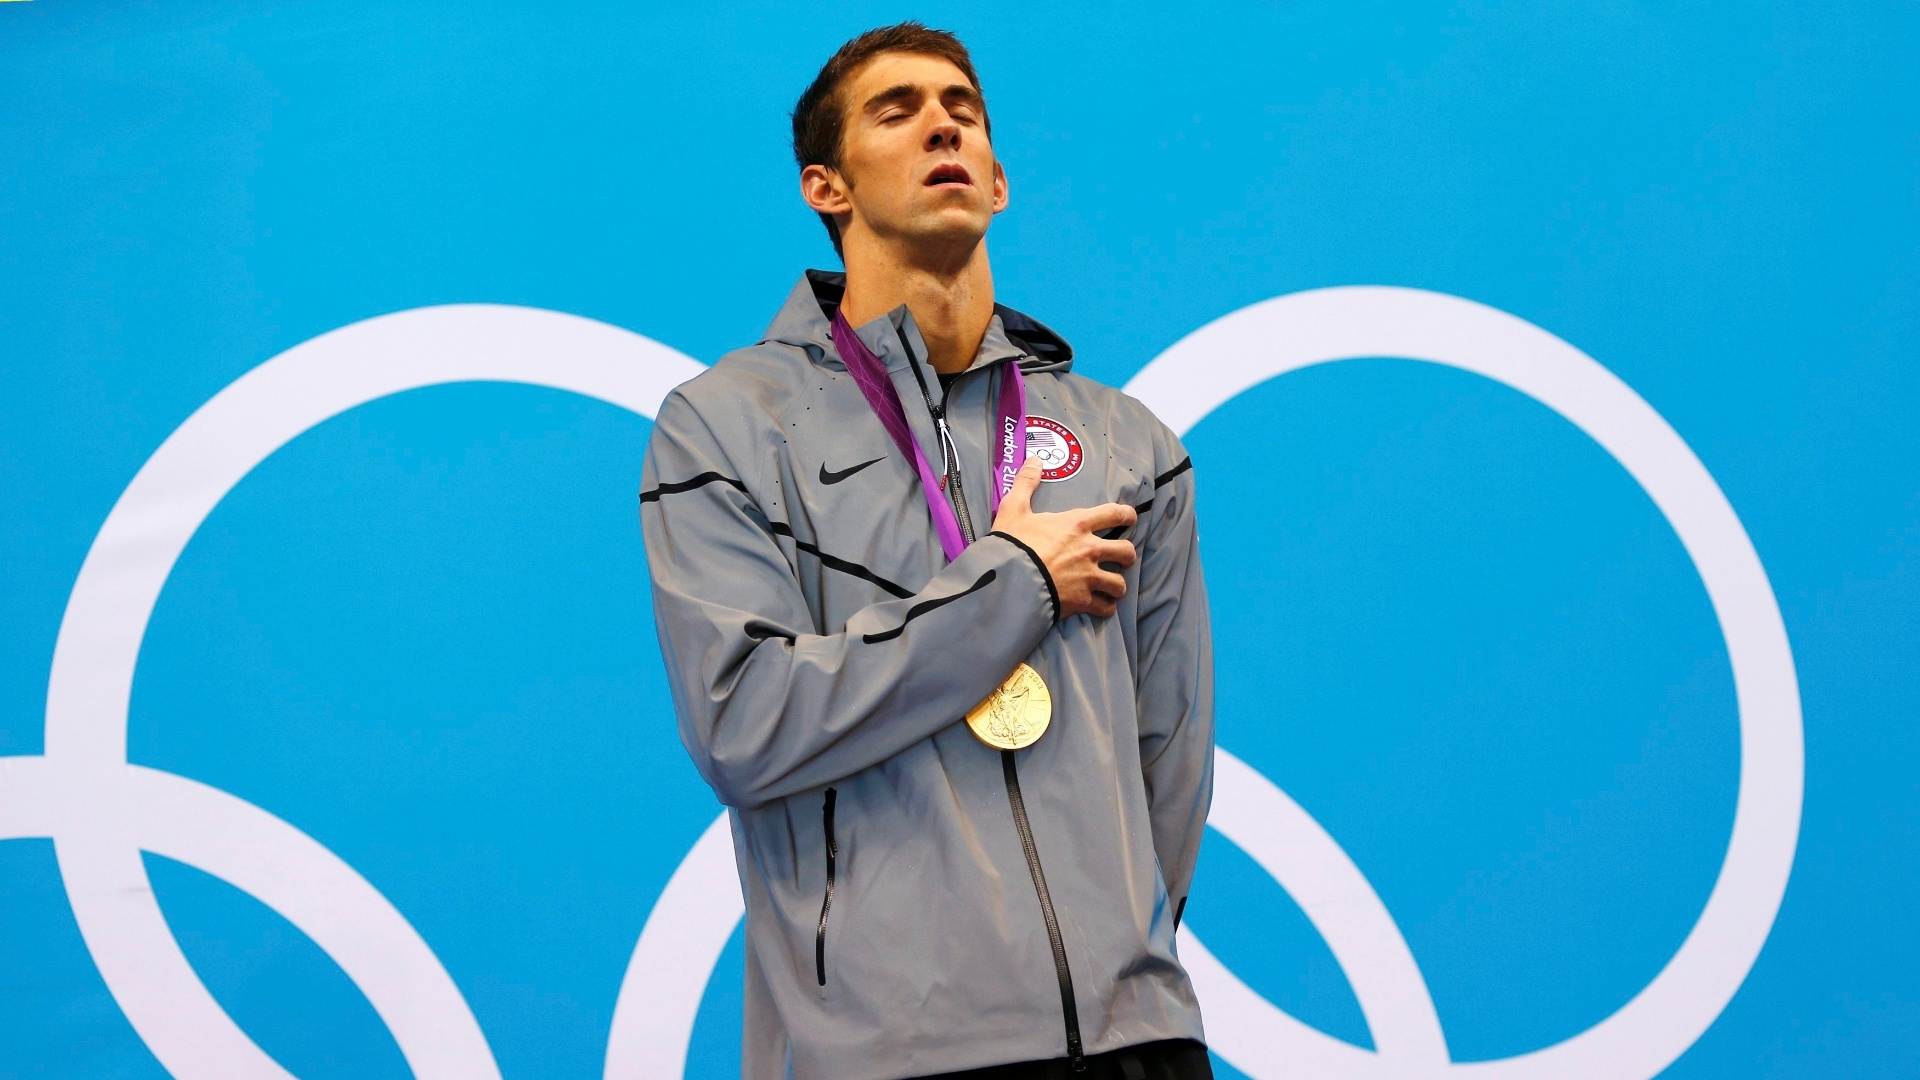 Nadador norte-americano Michael Phelps canta o hino durante a cerimnia de entrega das medalhas dos 100m borboleta